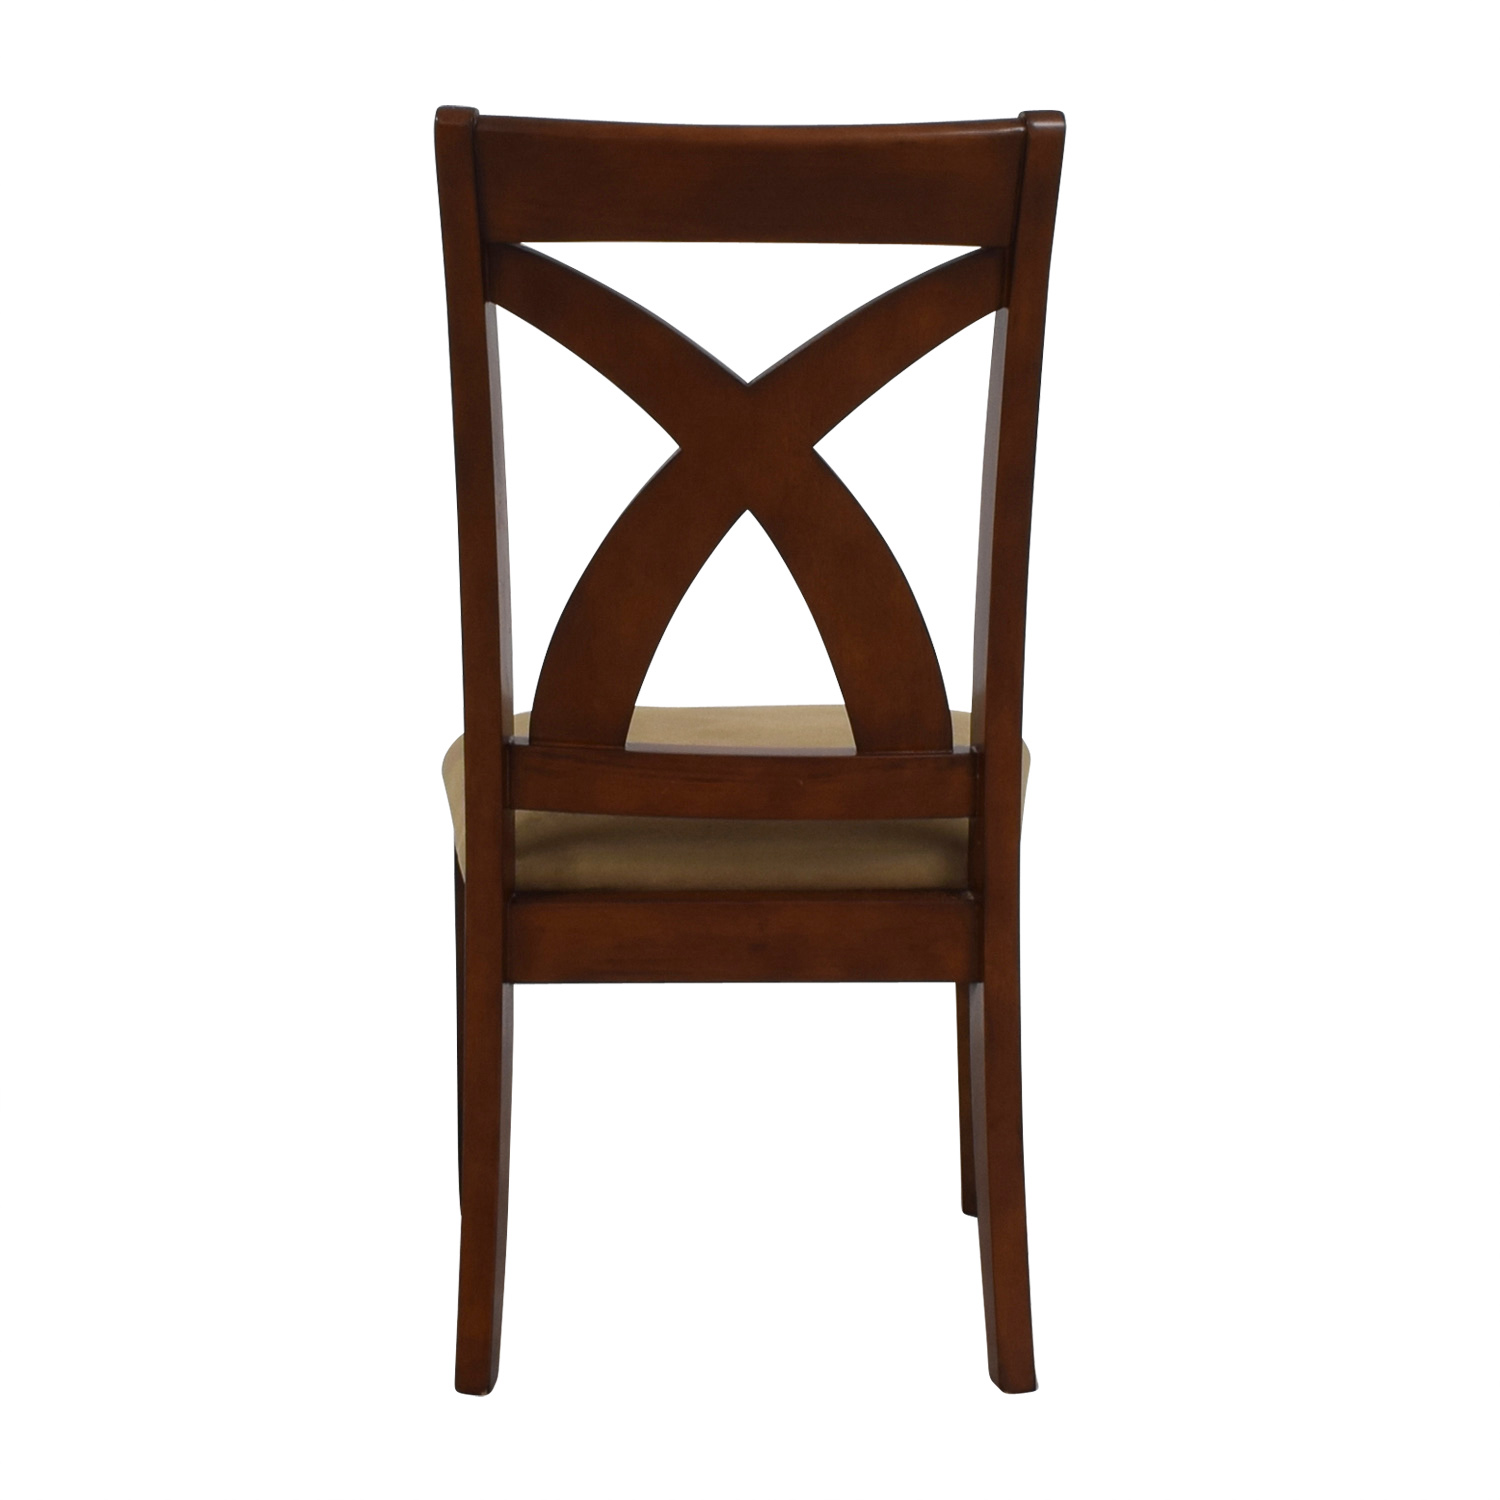 Solid Wood Chair with Cross Back & Padded Seat for sale